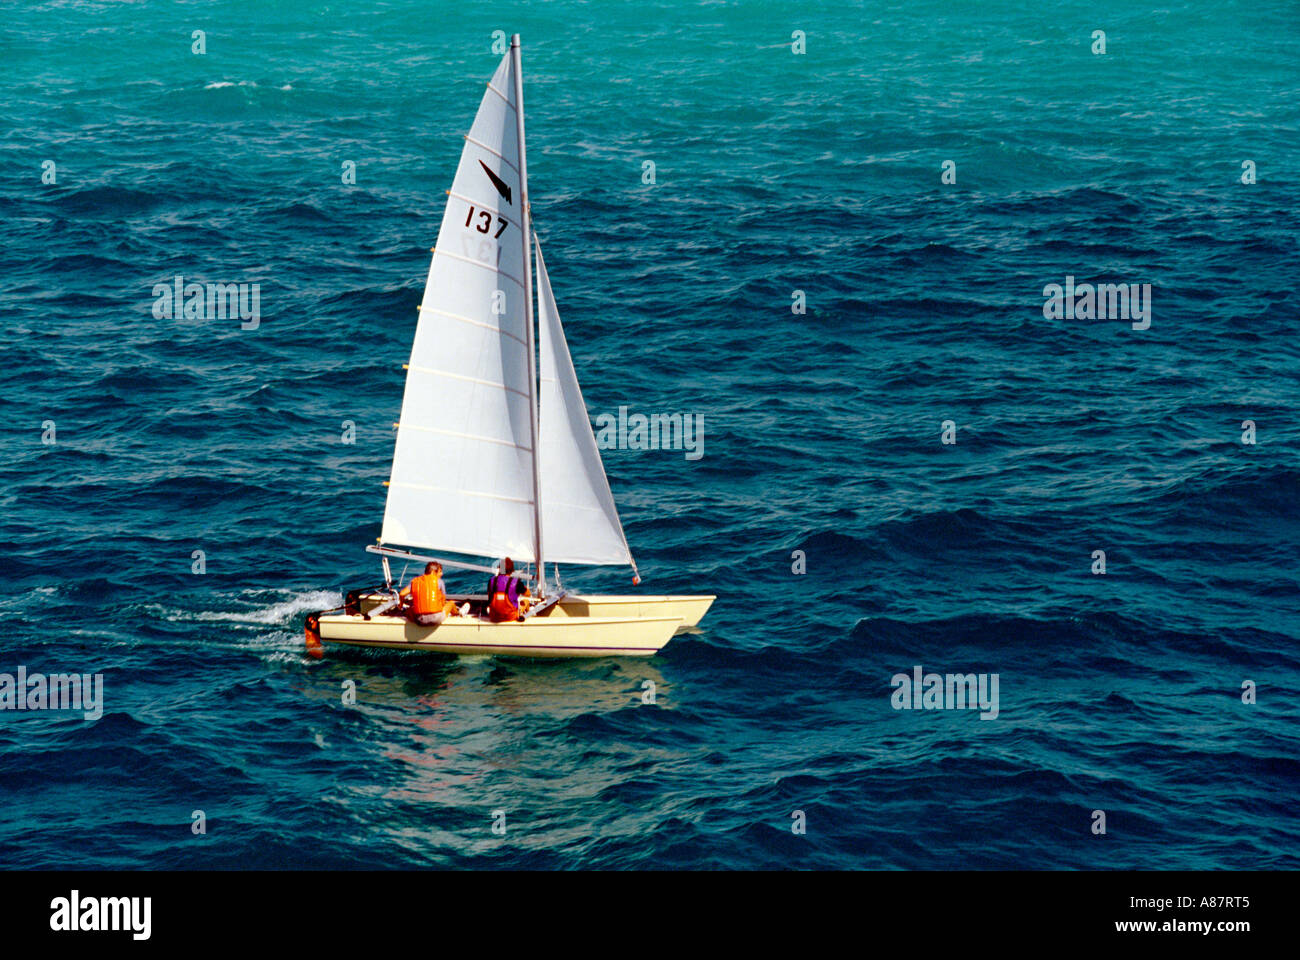 Dubai UAE Catamaran Sailing Off The Emirates - Stock Image